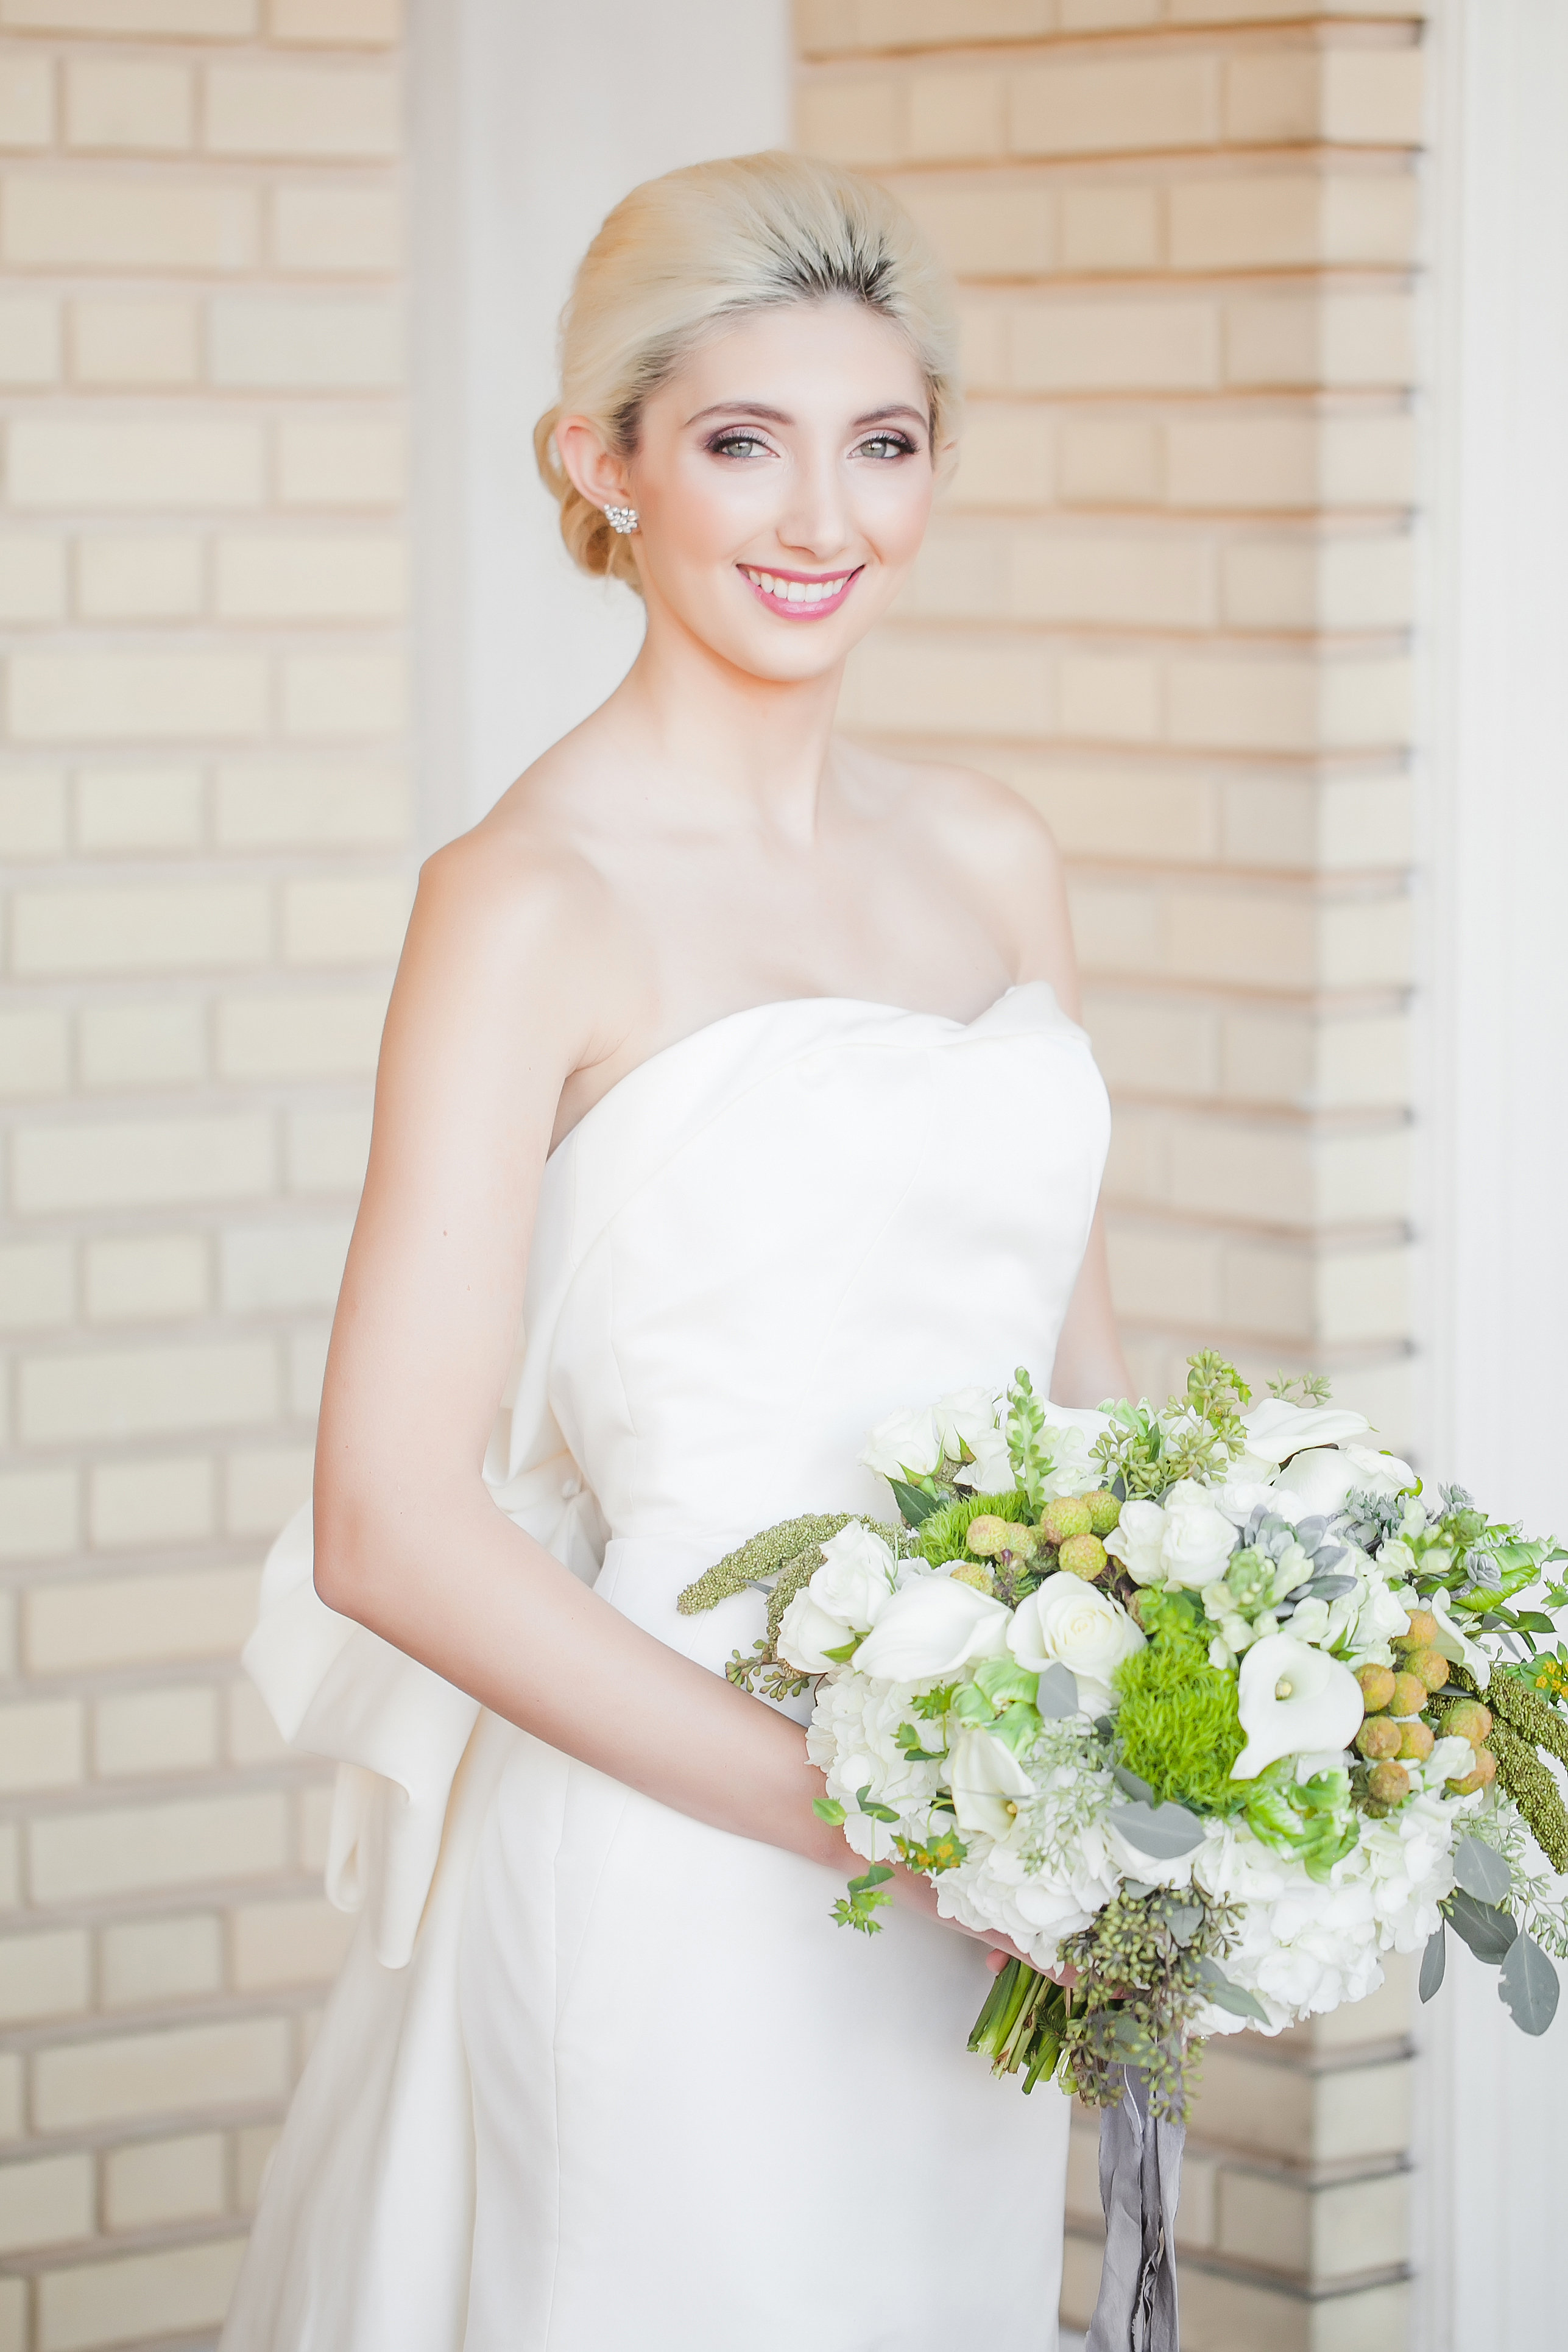 Bride wearing stunning dress from Paige and Elliot holding white bridal bouquet designed by Chelish Moore